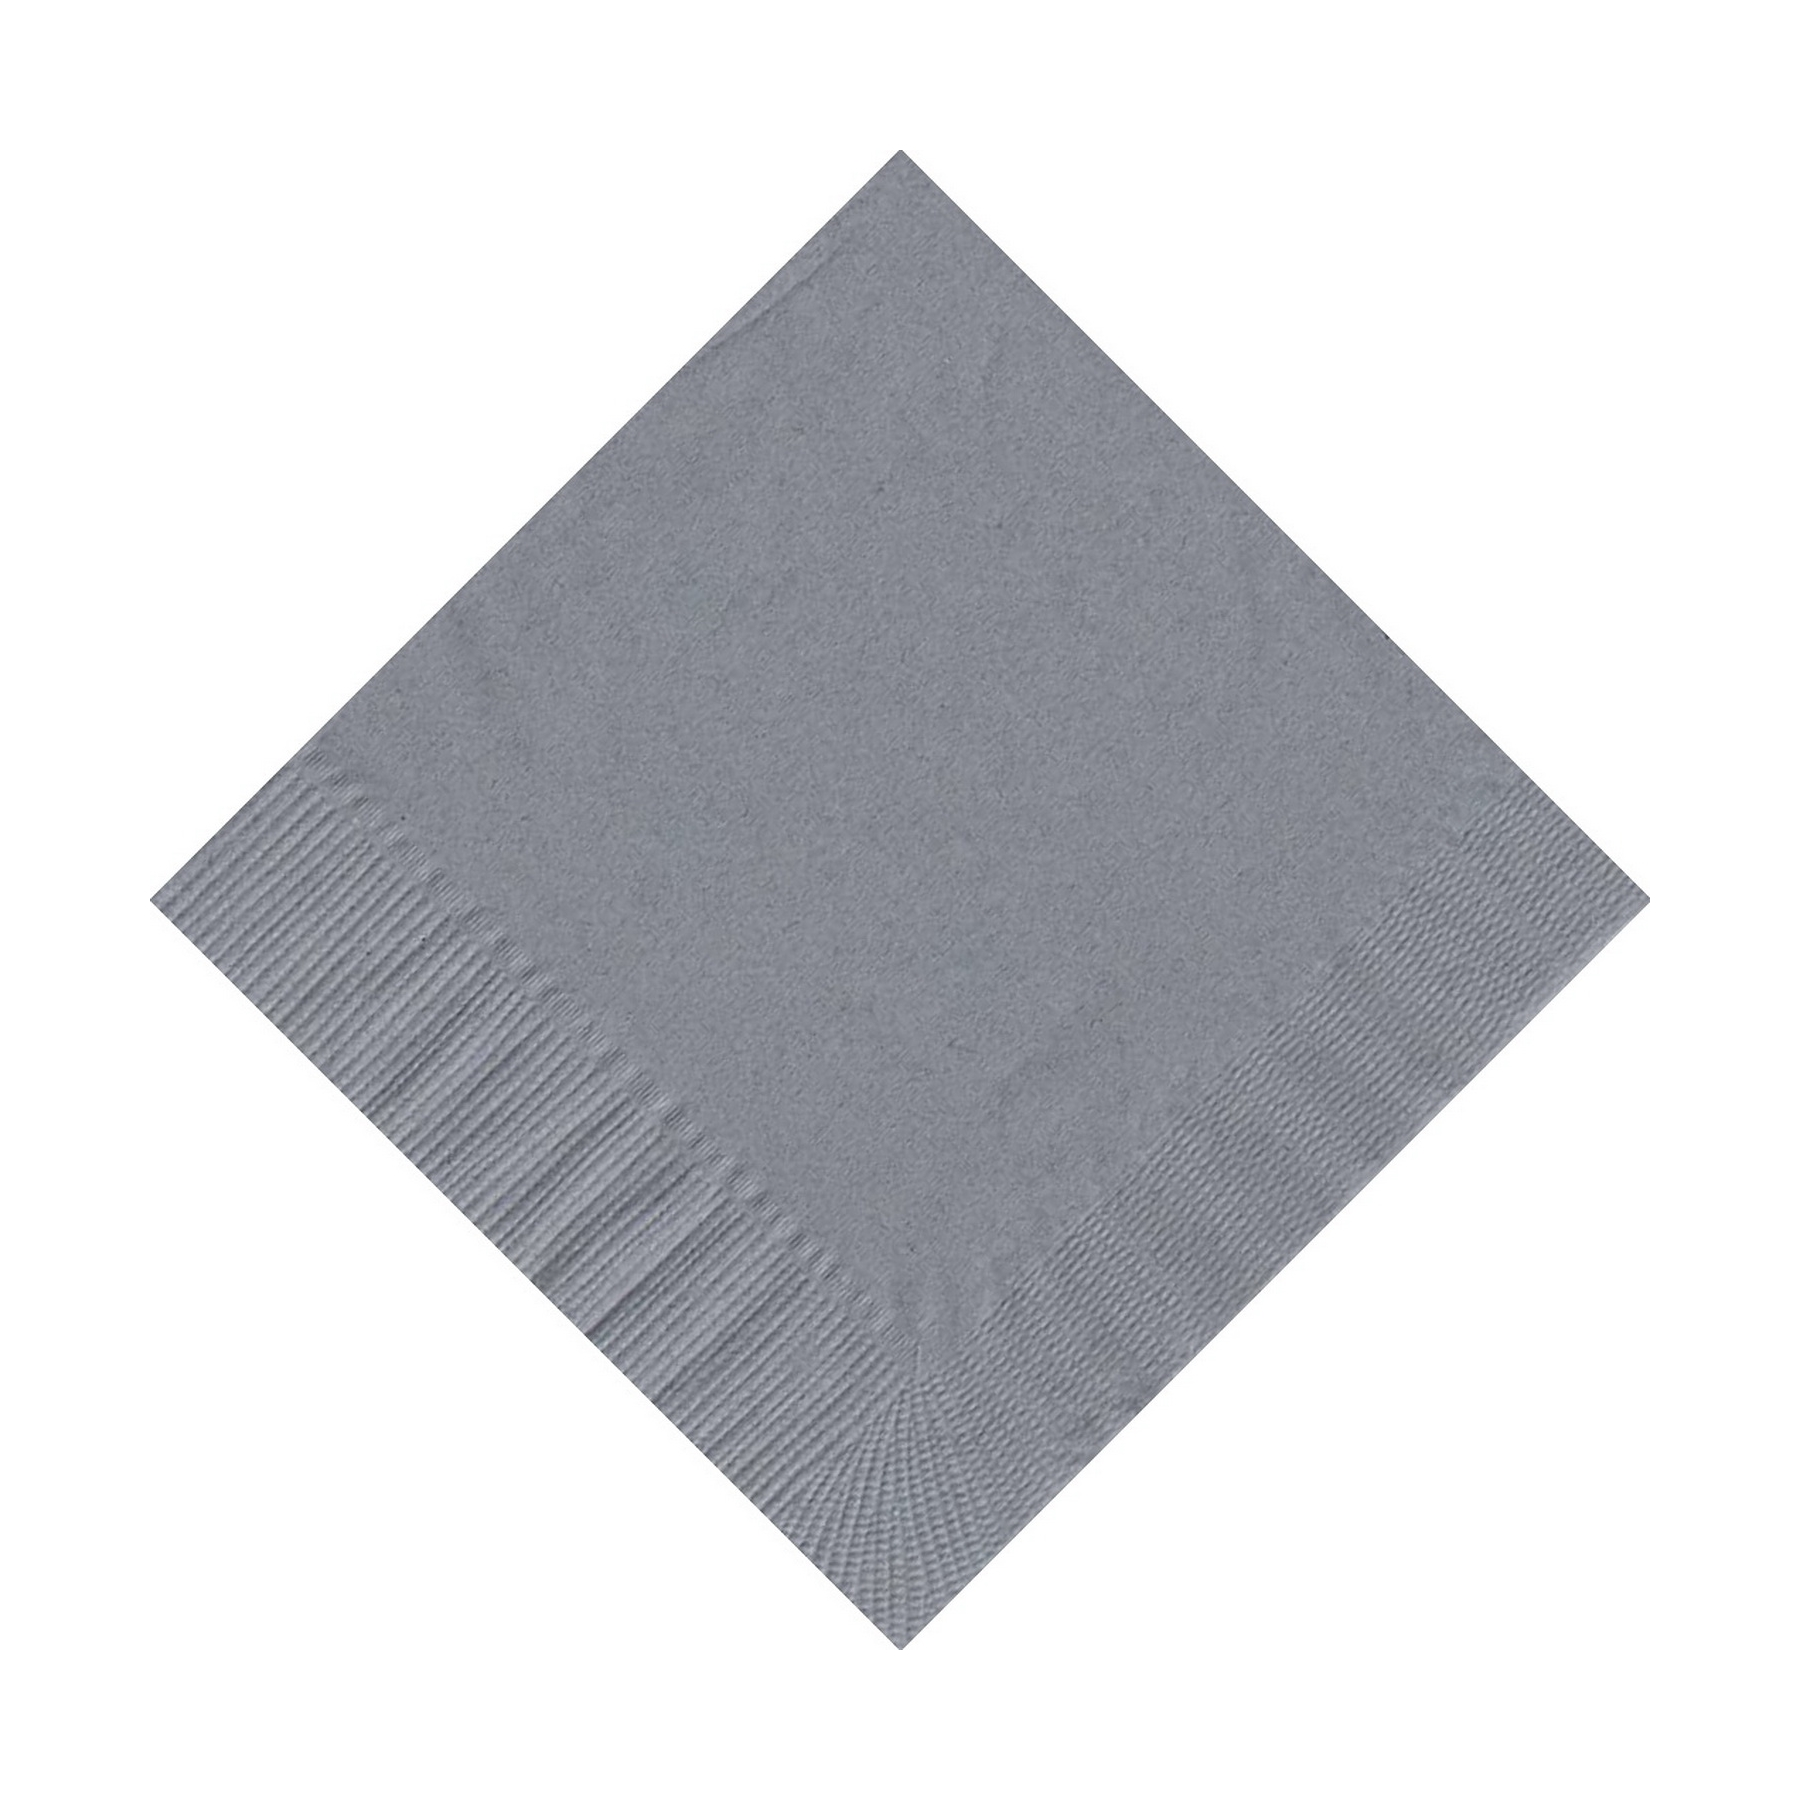 50 Plain Solid Colors Beverage Cocktail Napkins Paper Silver by CREATIVE CONVERTING